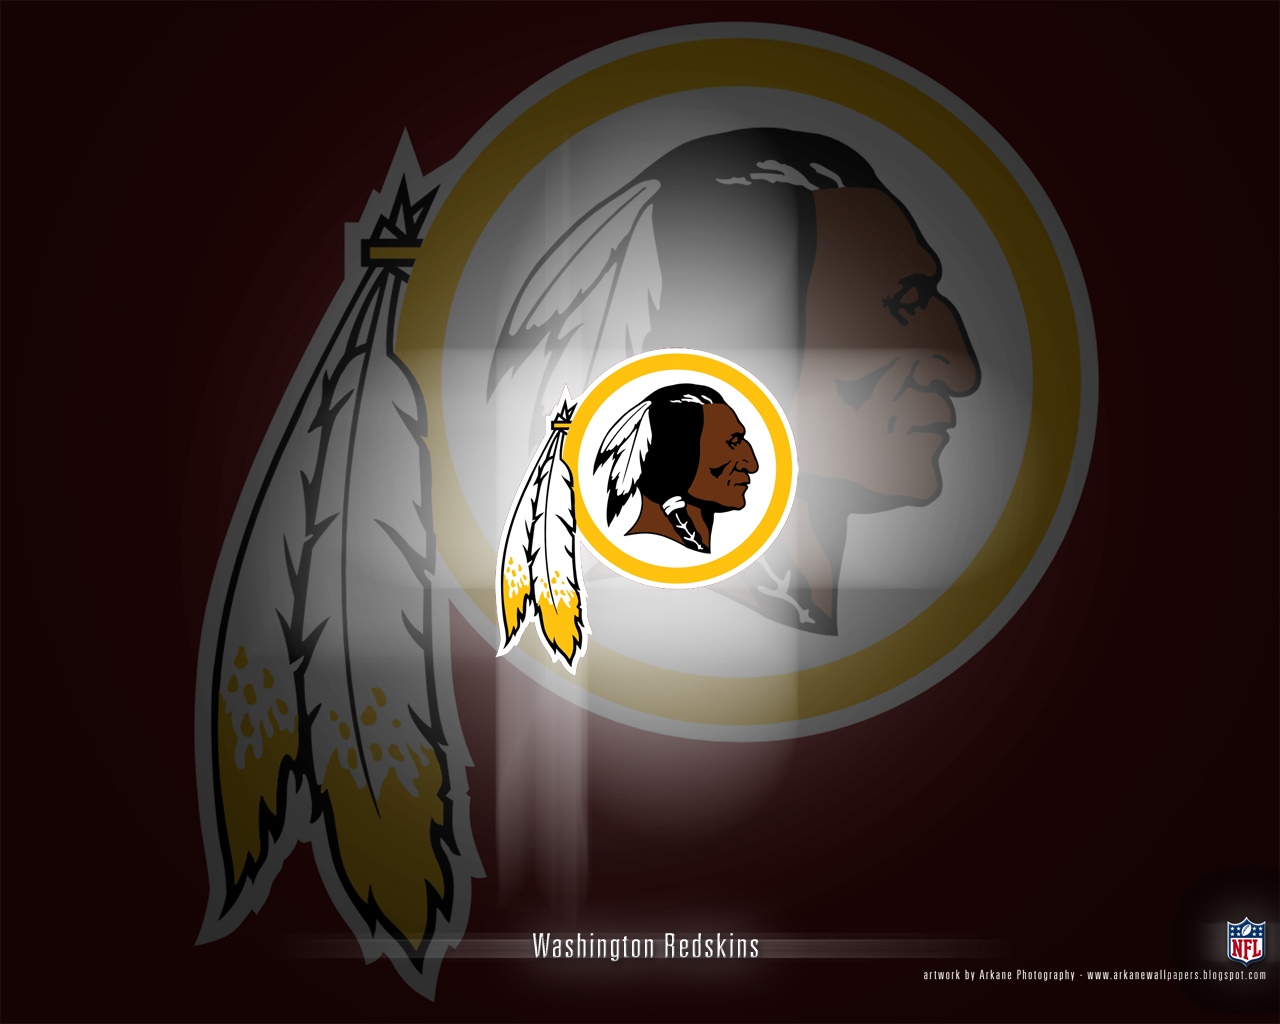 Arkane NFL Wallpapers Washington Redskins   Vol 1 1280x1024